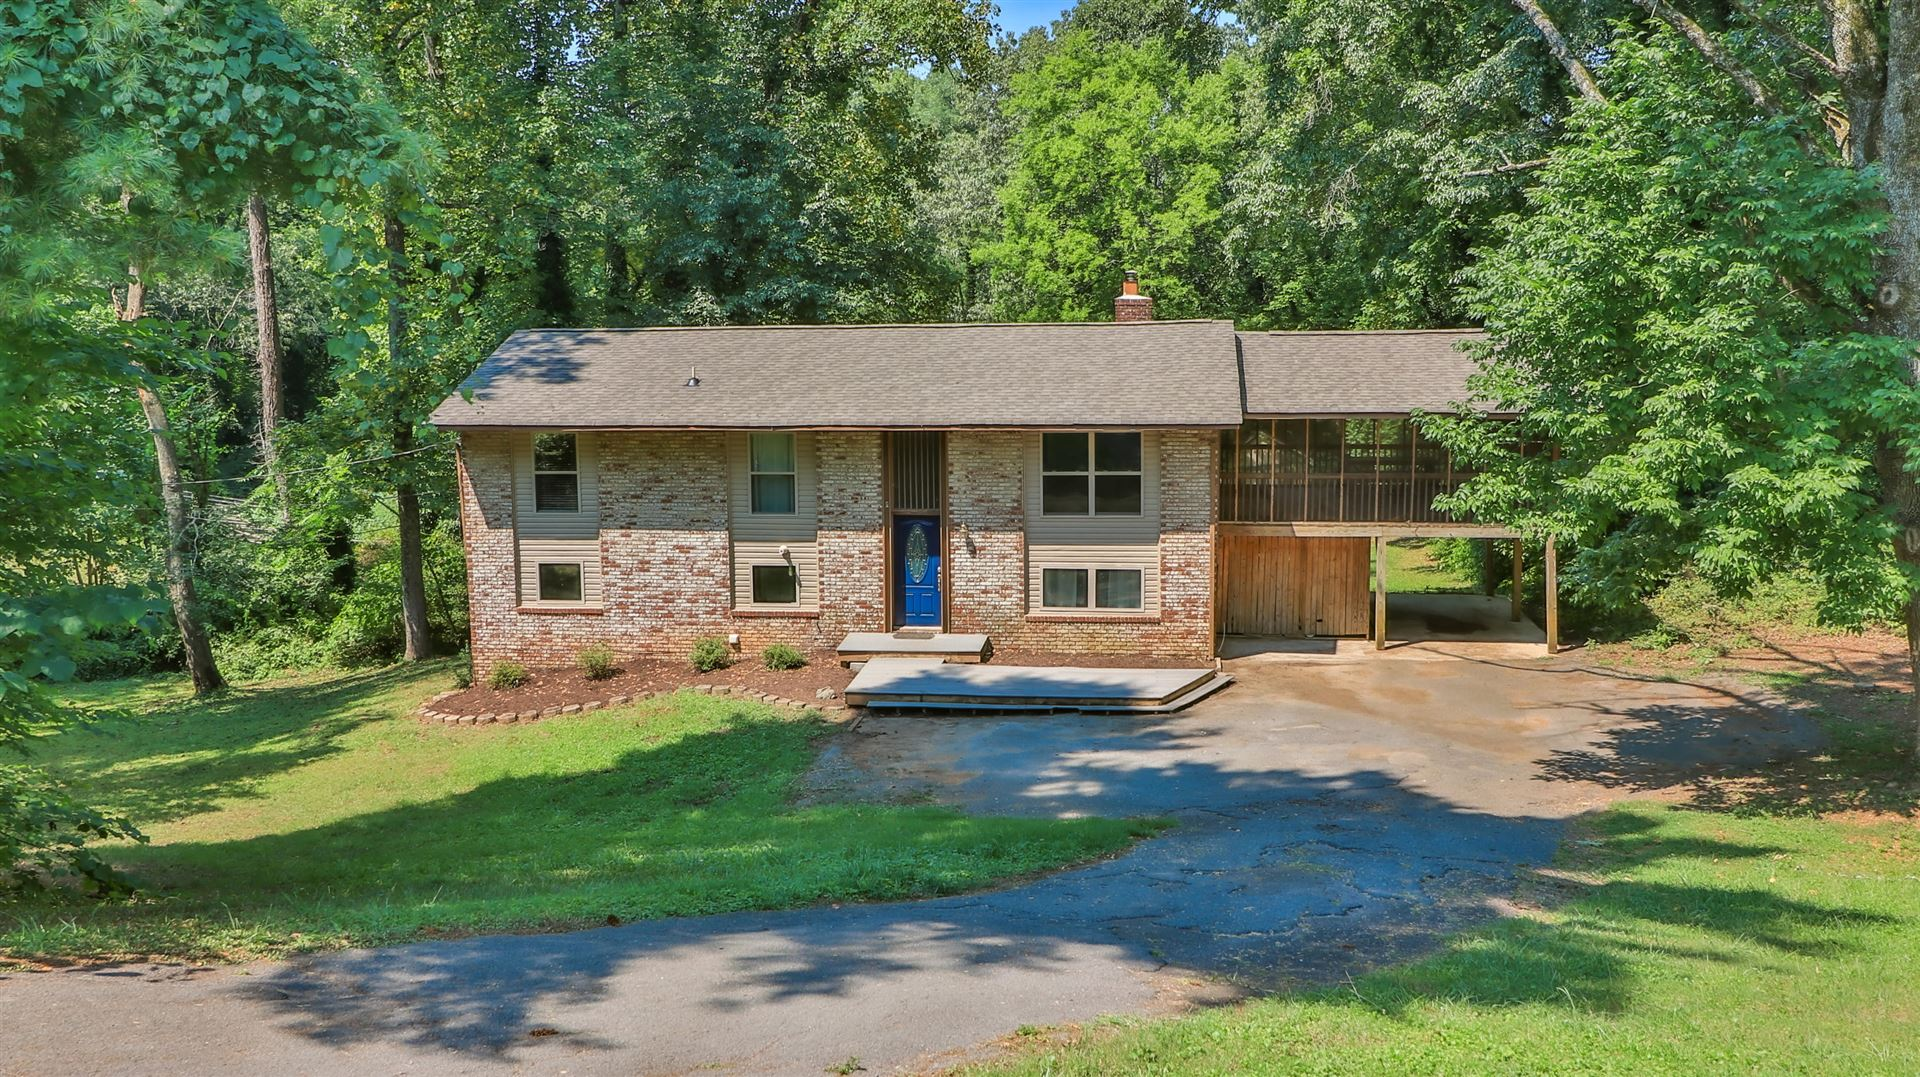 Photo of 509 Chisholm Tr, Knoxville, TN 37919 (MLS # 1162543)